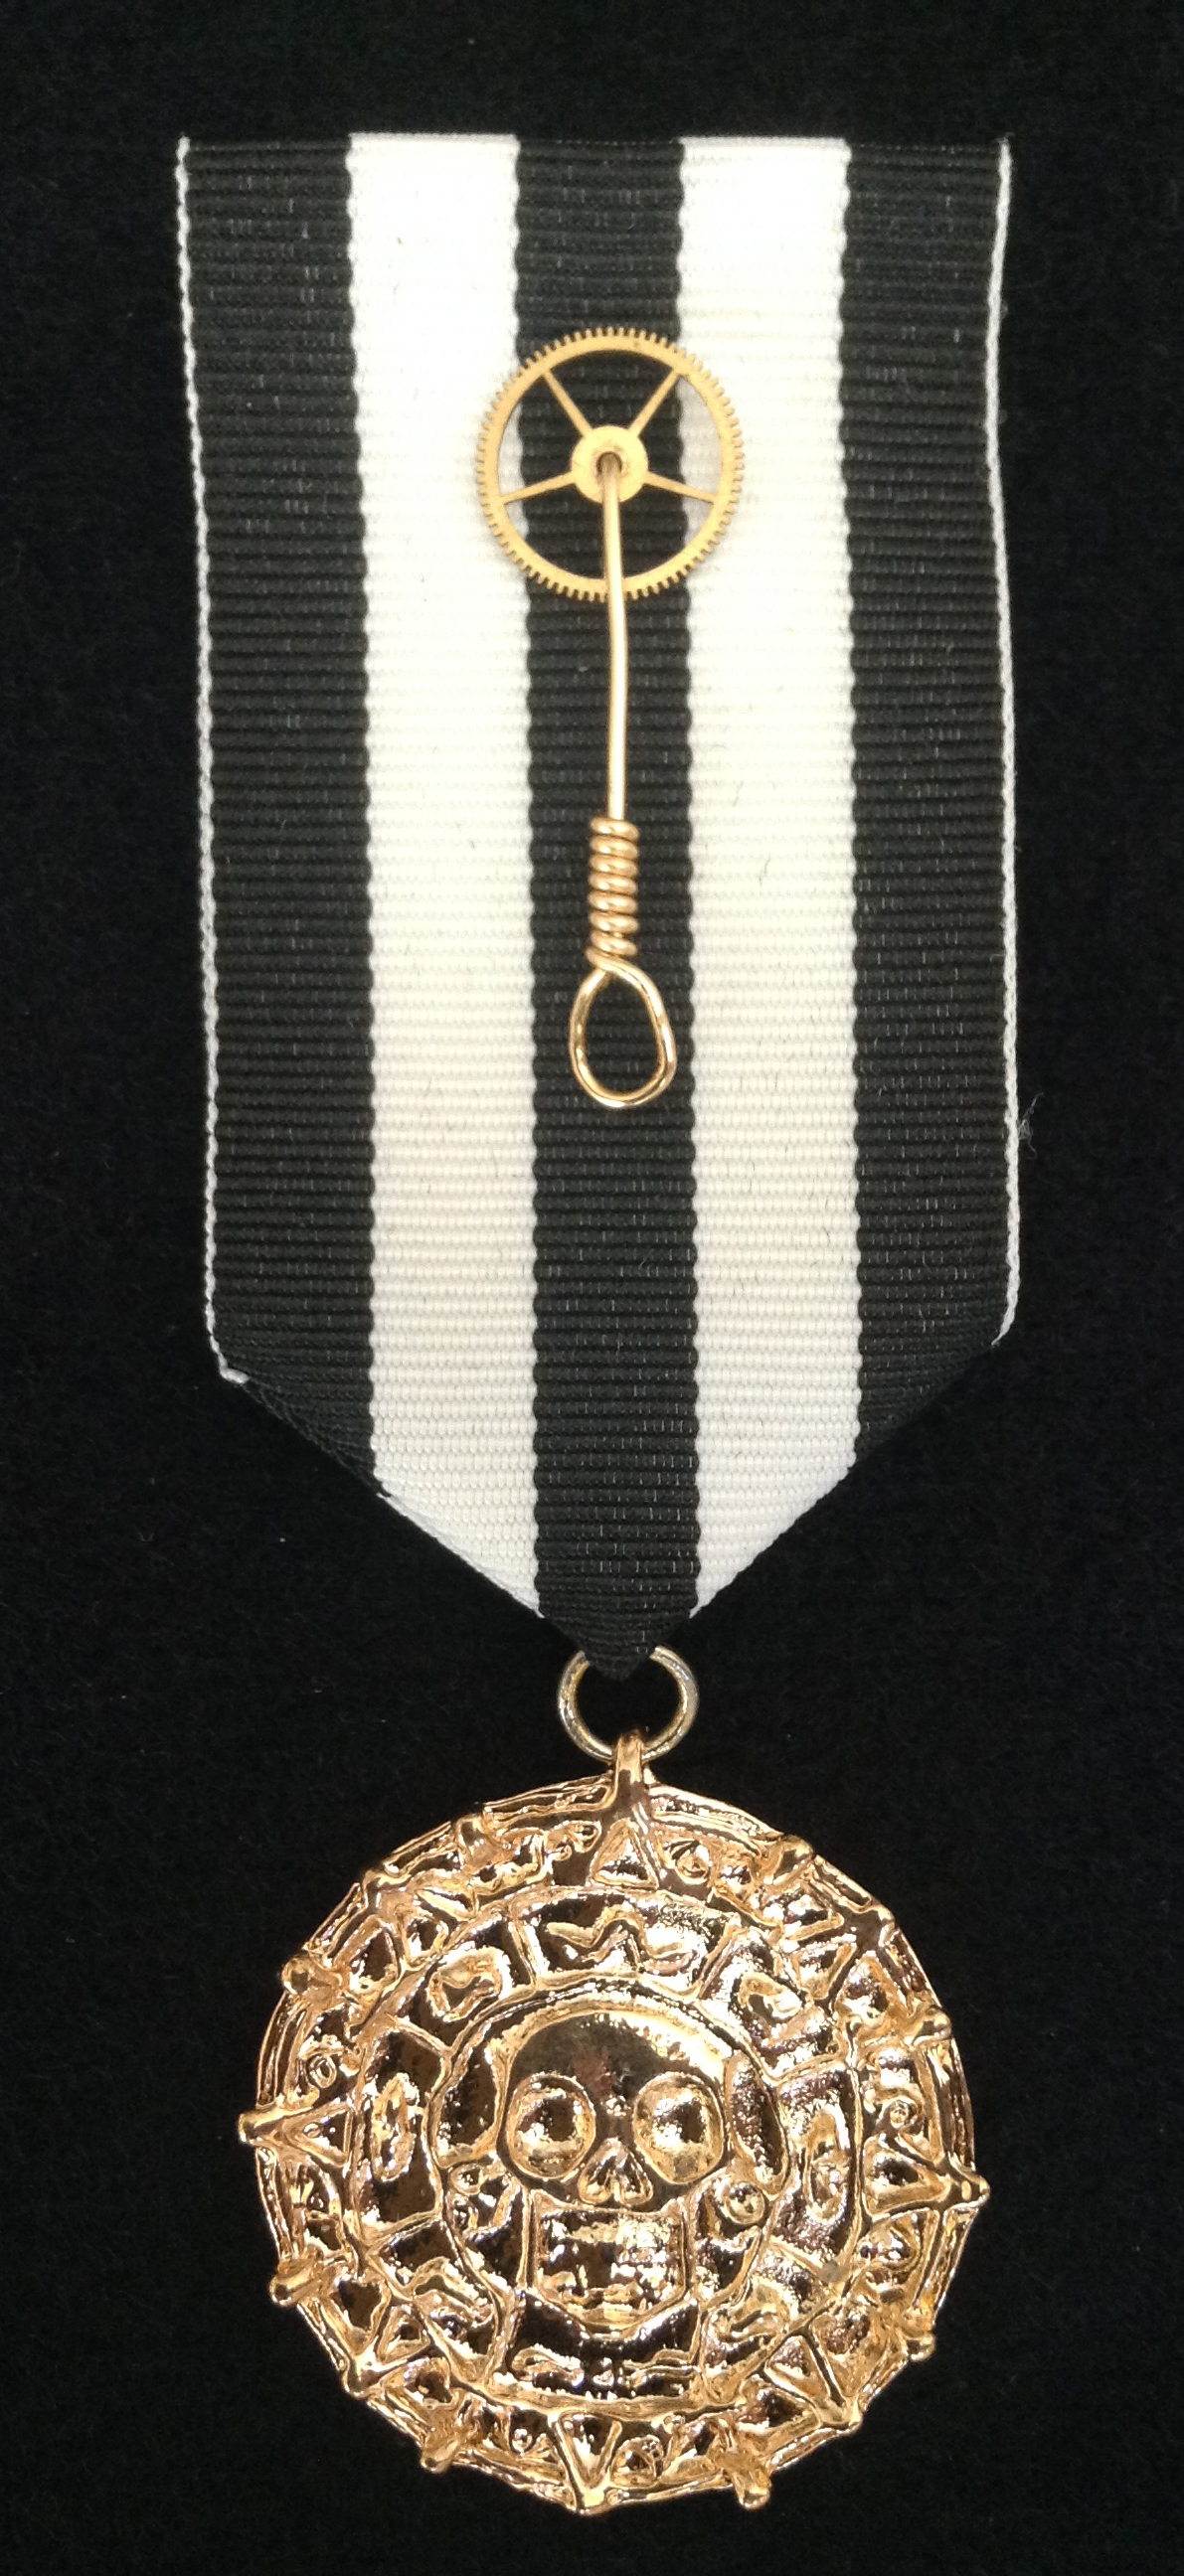 gallows medal